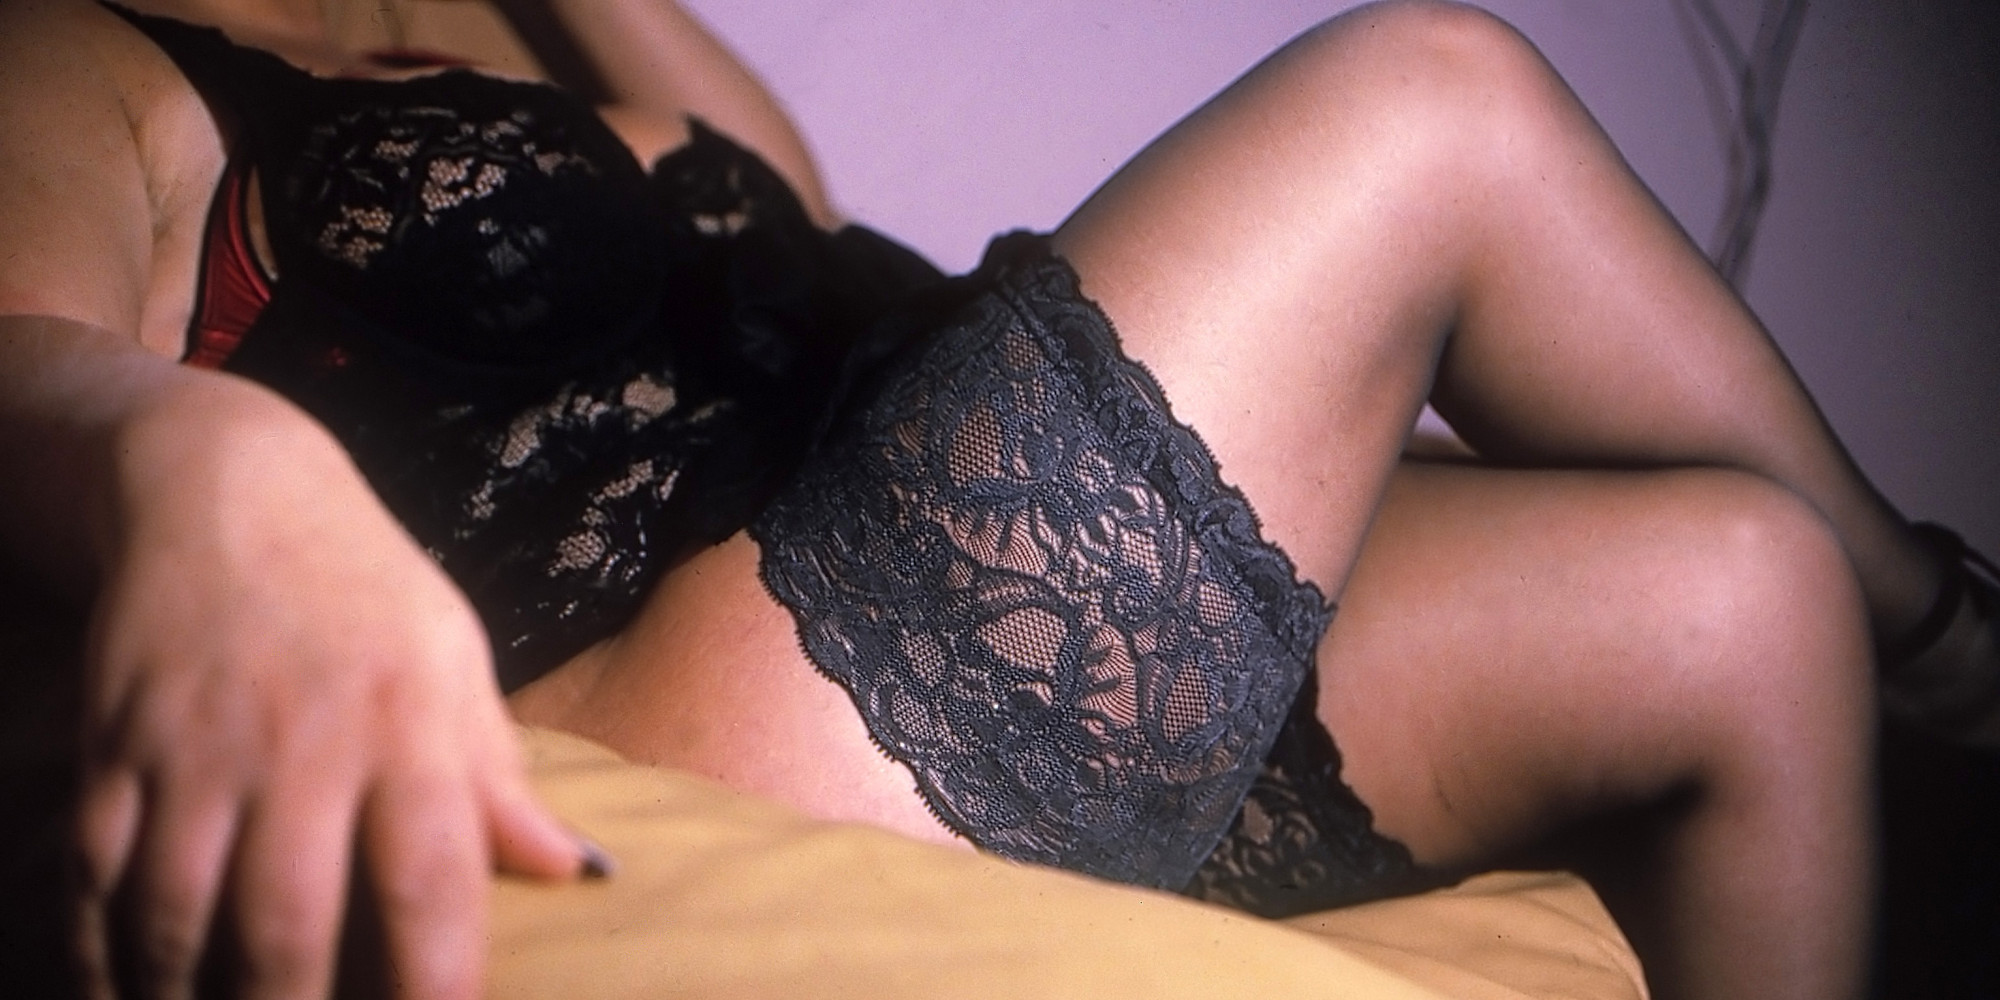 rnt massage where to find brothels